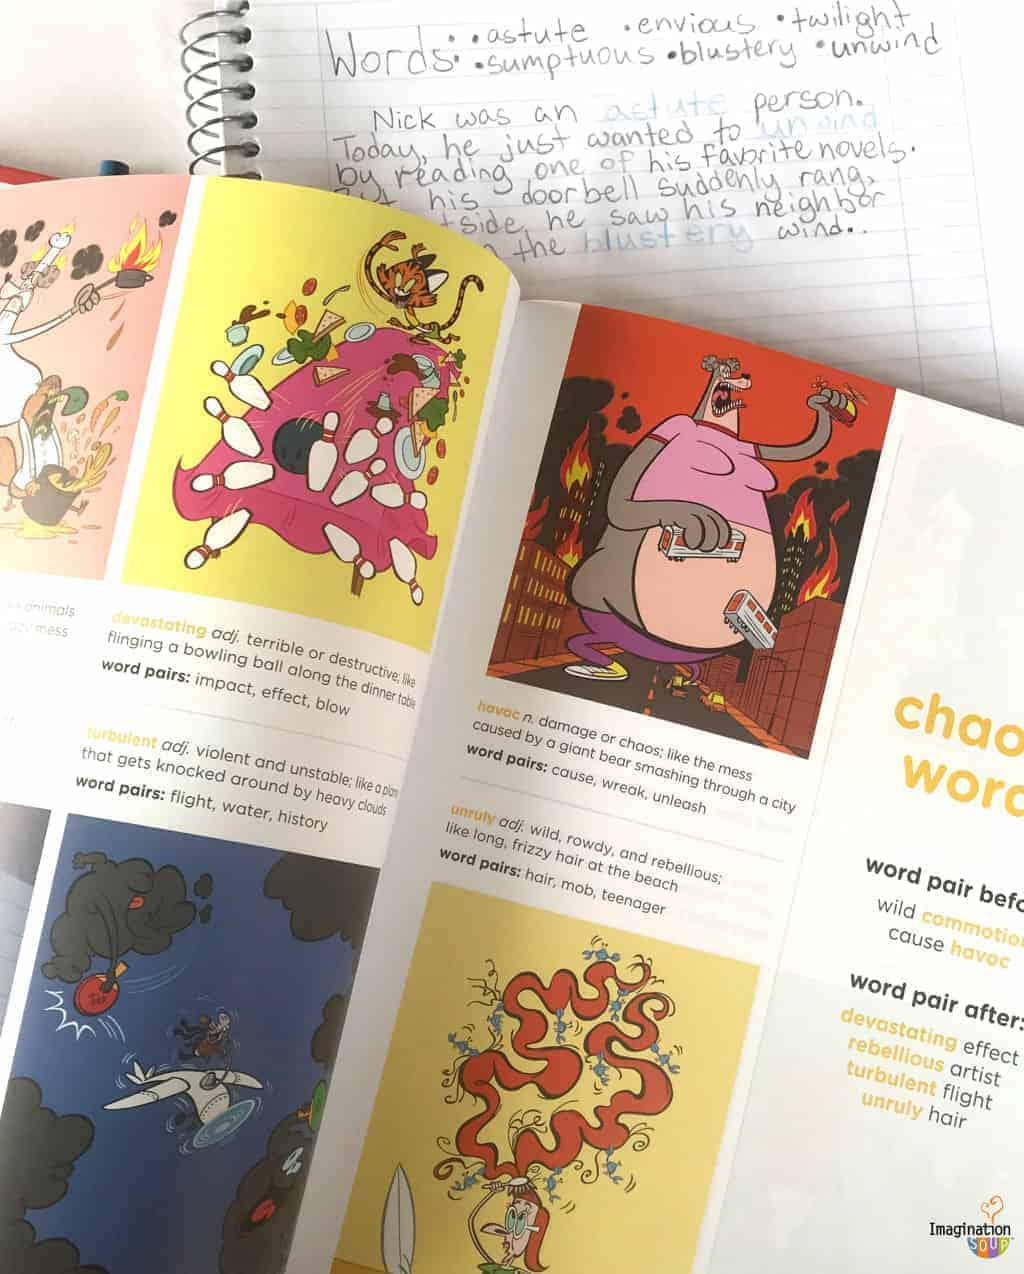 learn new words with this illustrated dictionary for kids